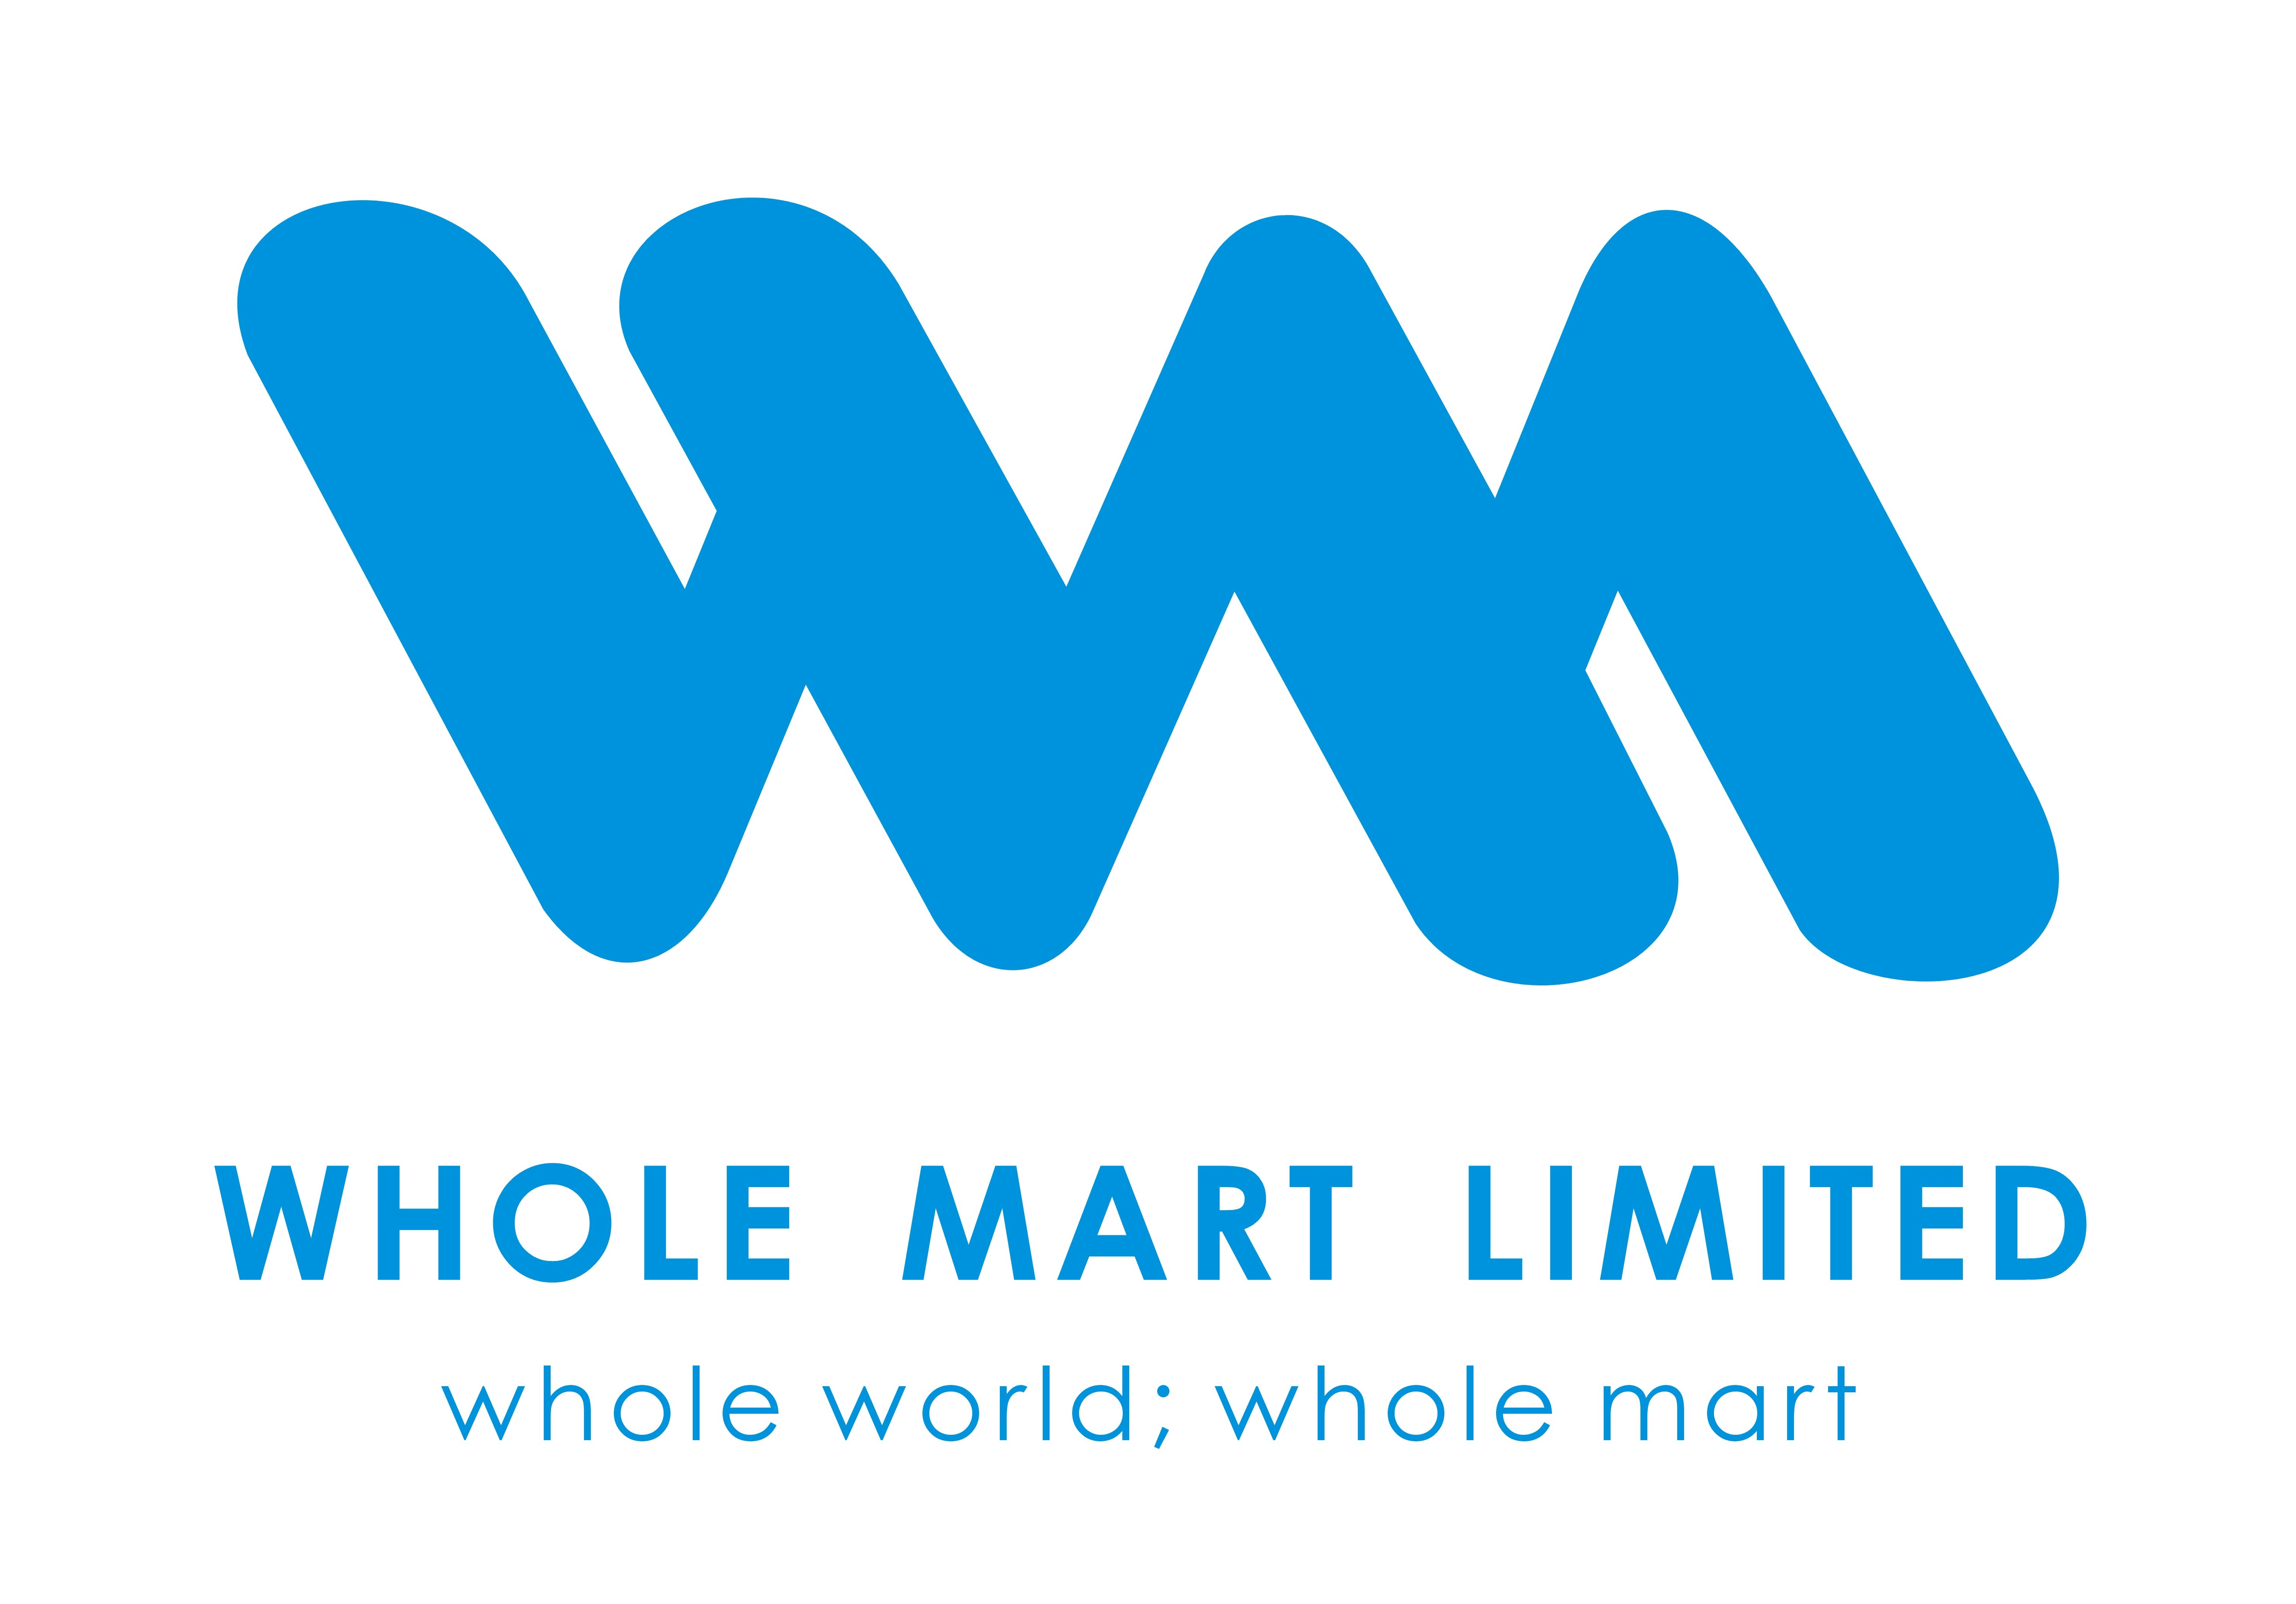 Whole Mart (SMC -Private) Limited